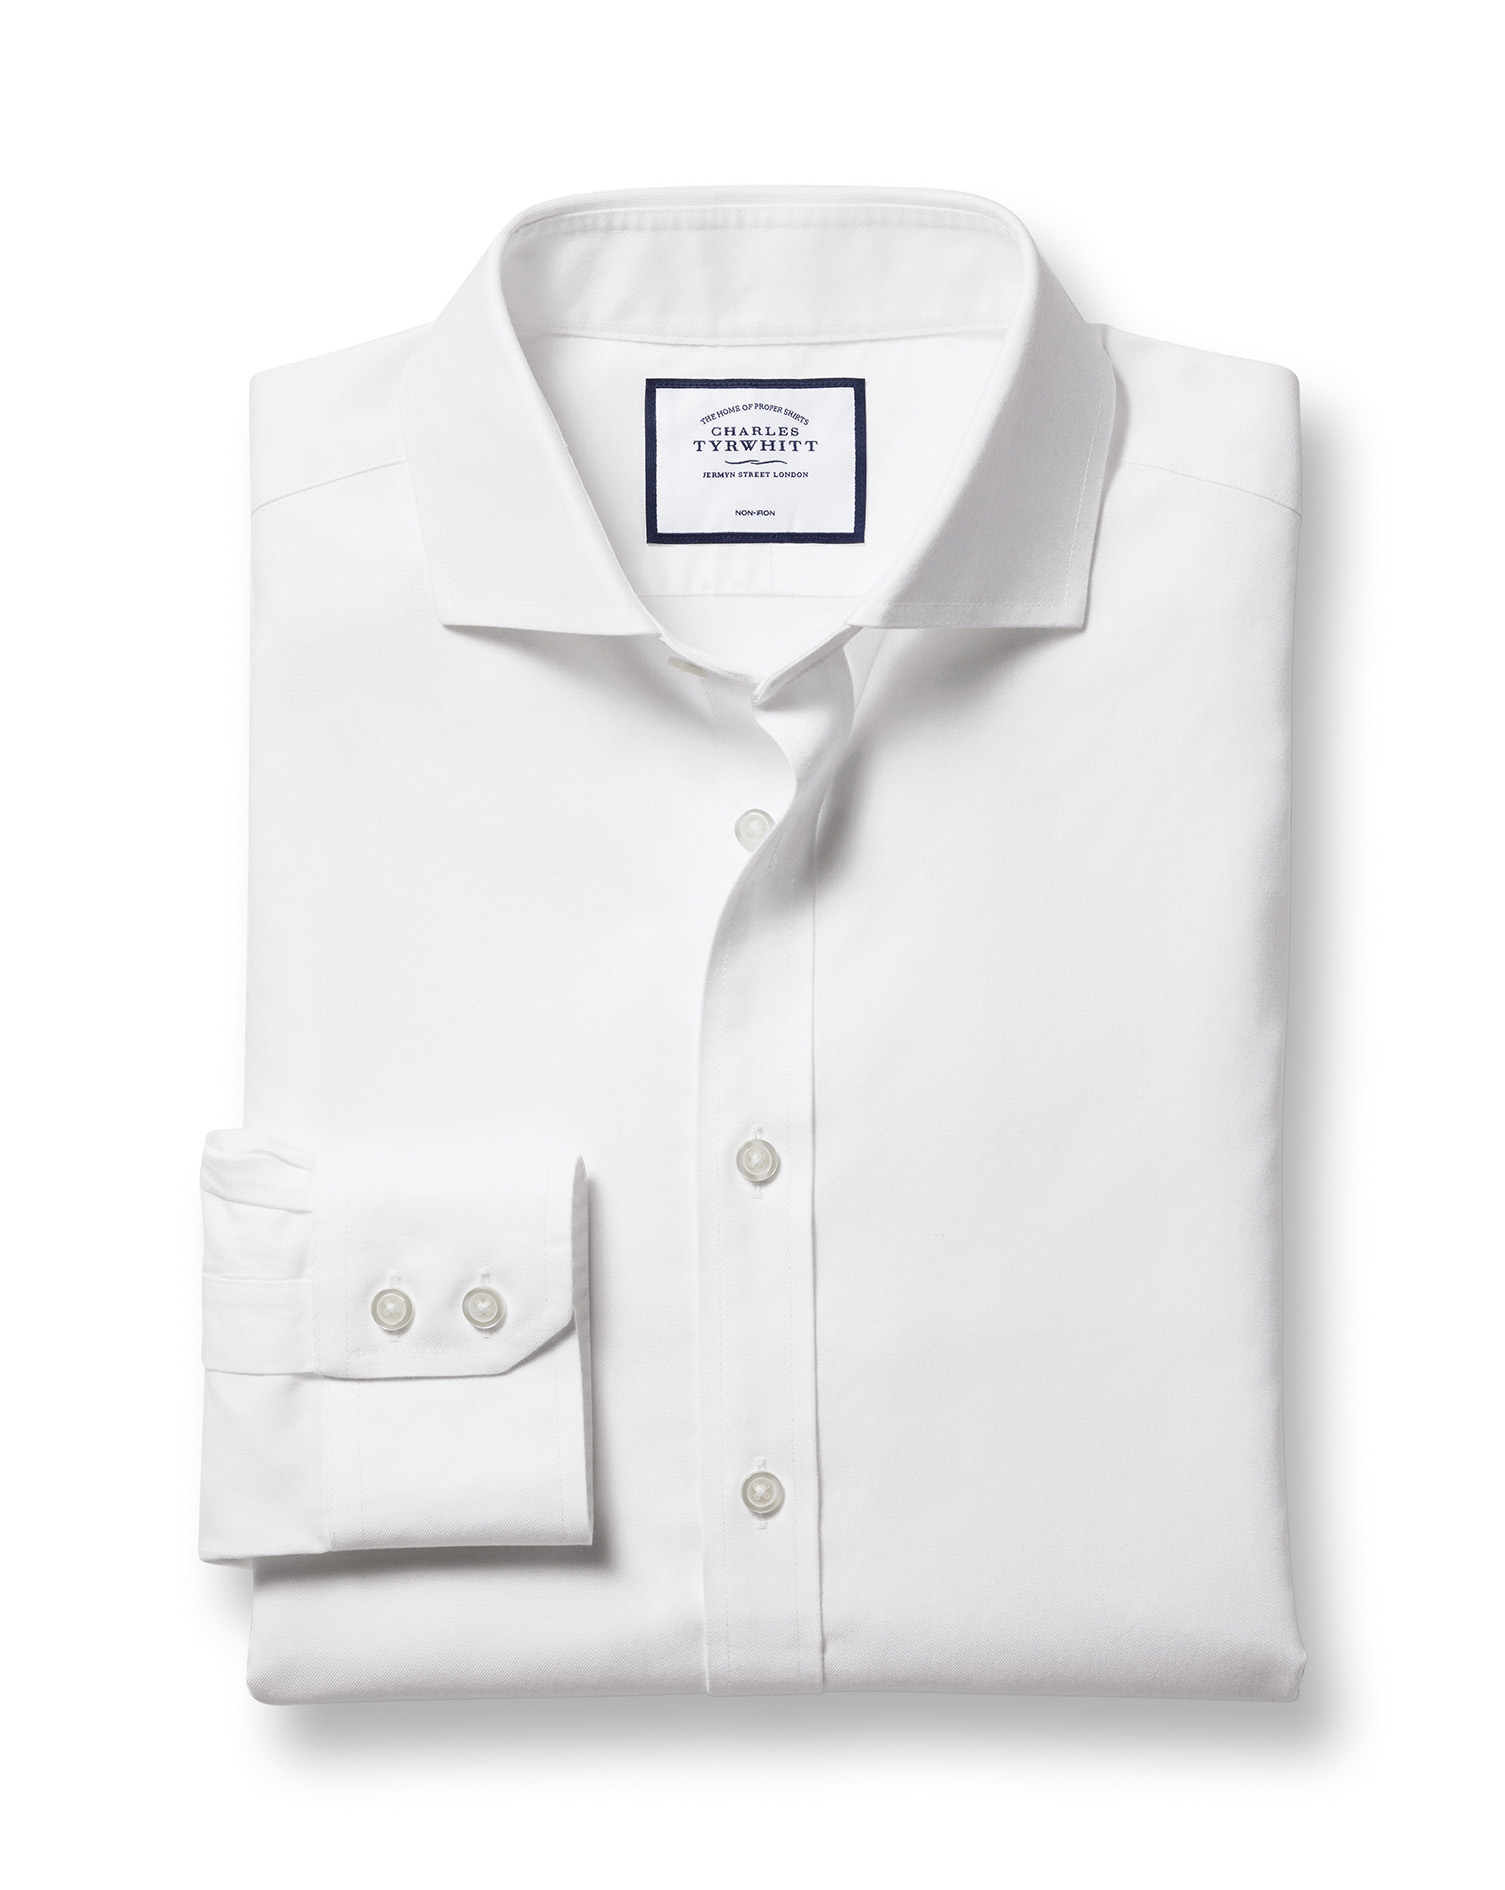 Classic Fit White Non-Iron Twill Cutaway Collar Cotton Formal Shirt Single Cuff Size 18/38 by Charle